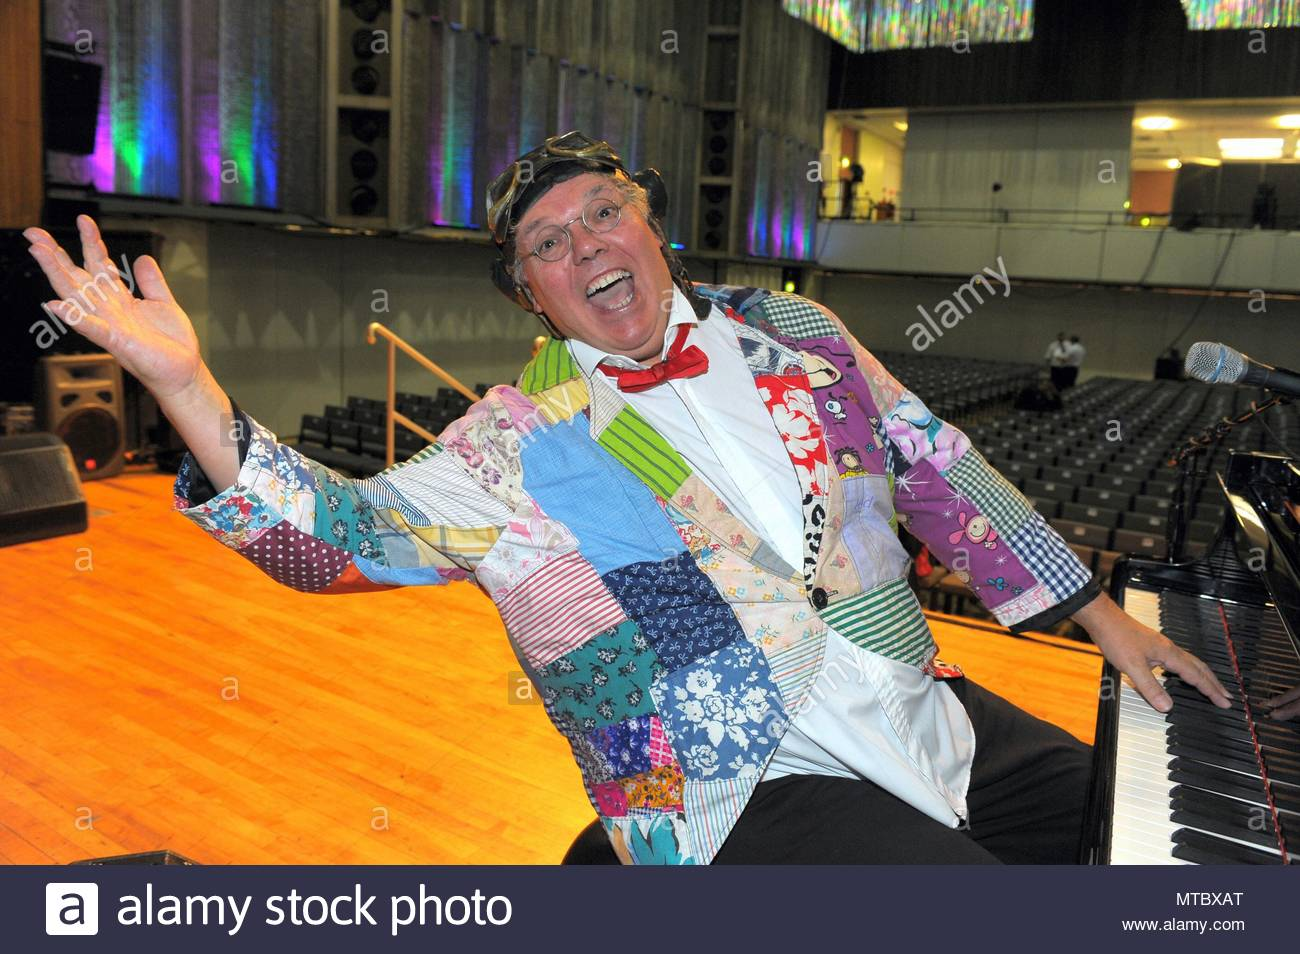 Roy chubby brown concerts